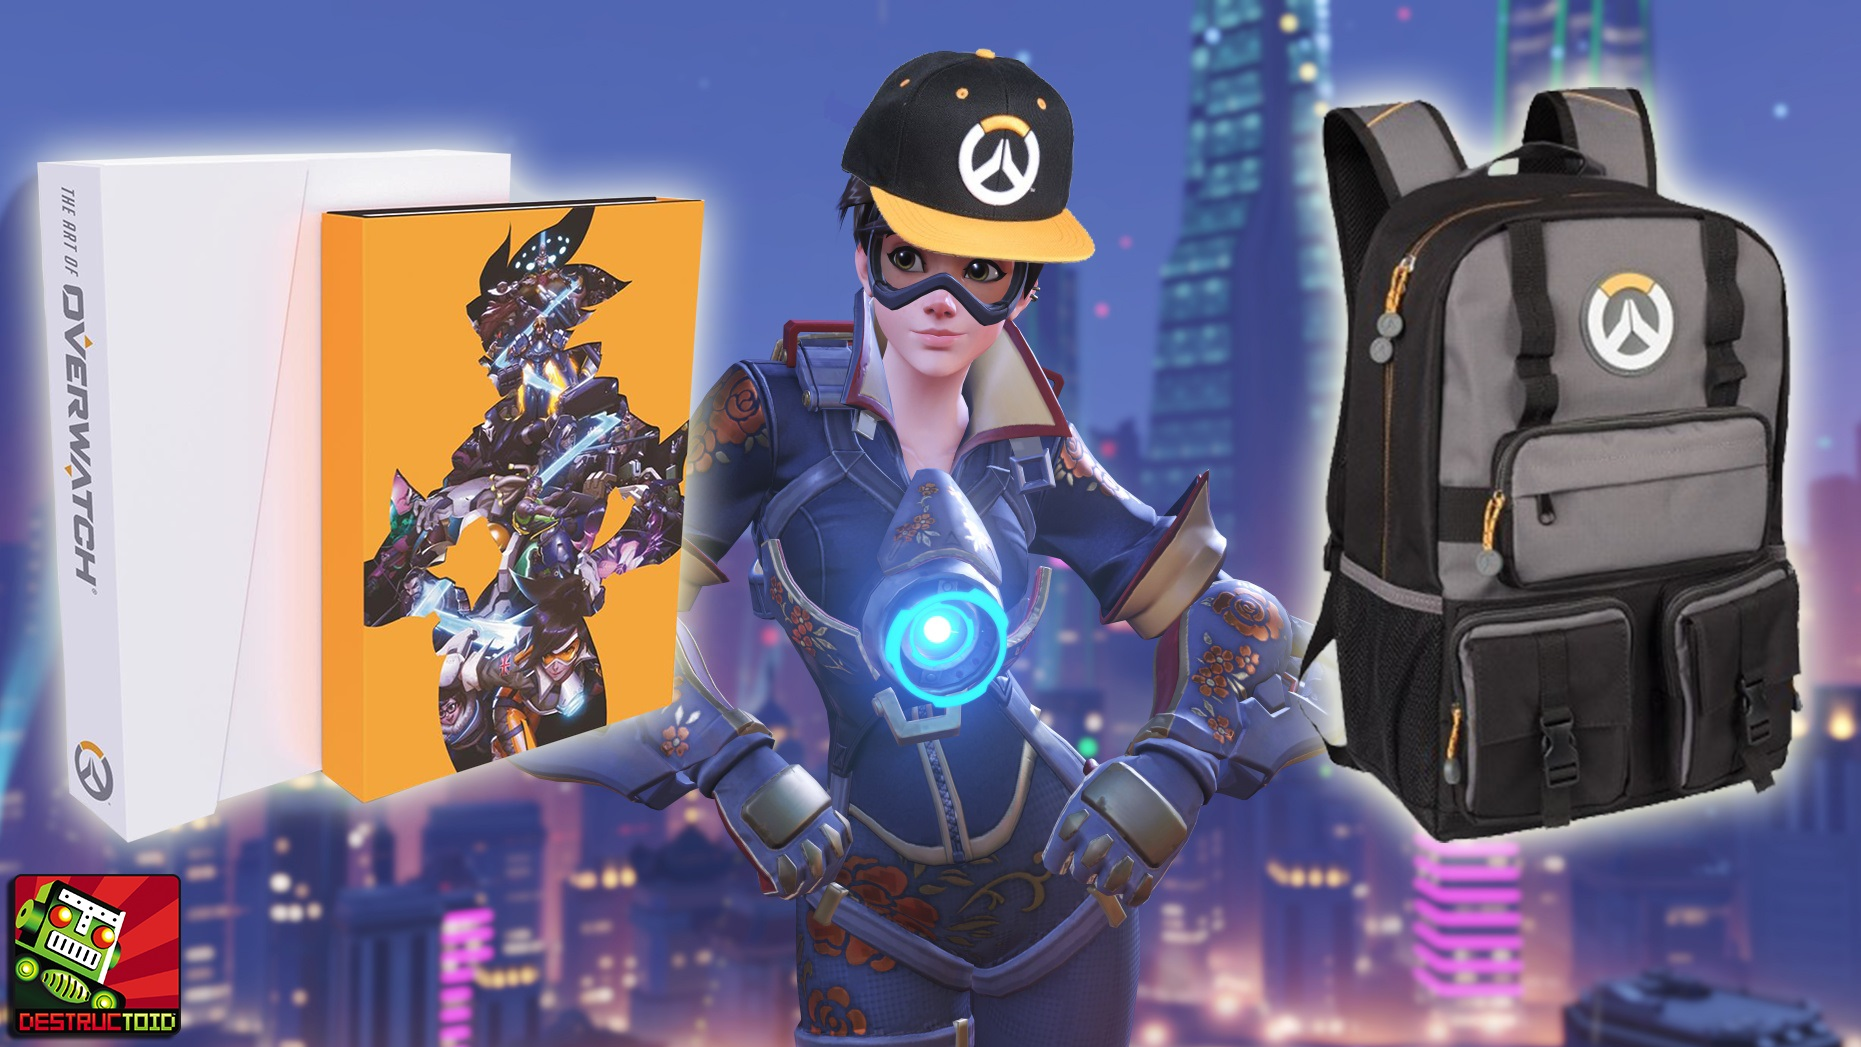 Contest: Win an Overwatch prize pack from Fun.com screenshot